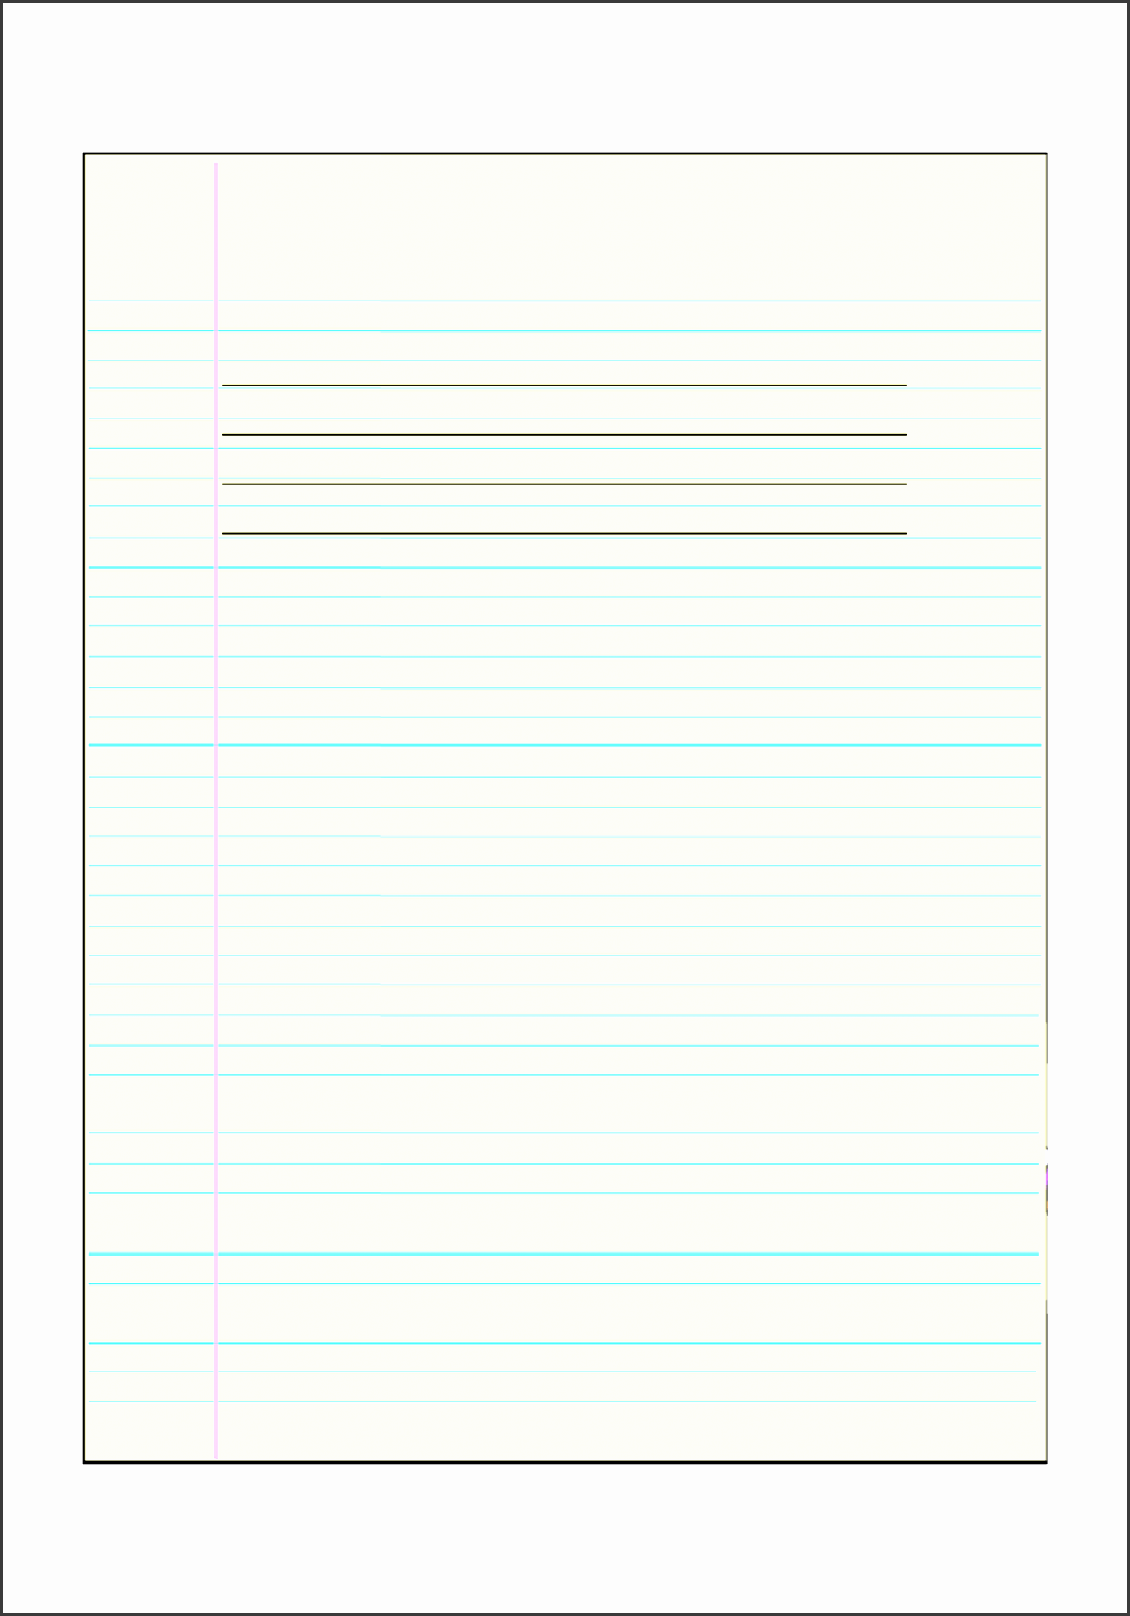 fax cover sheet template free